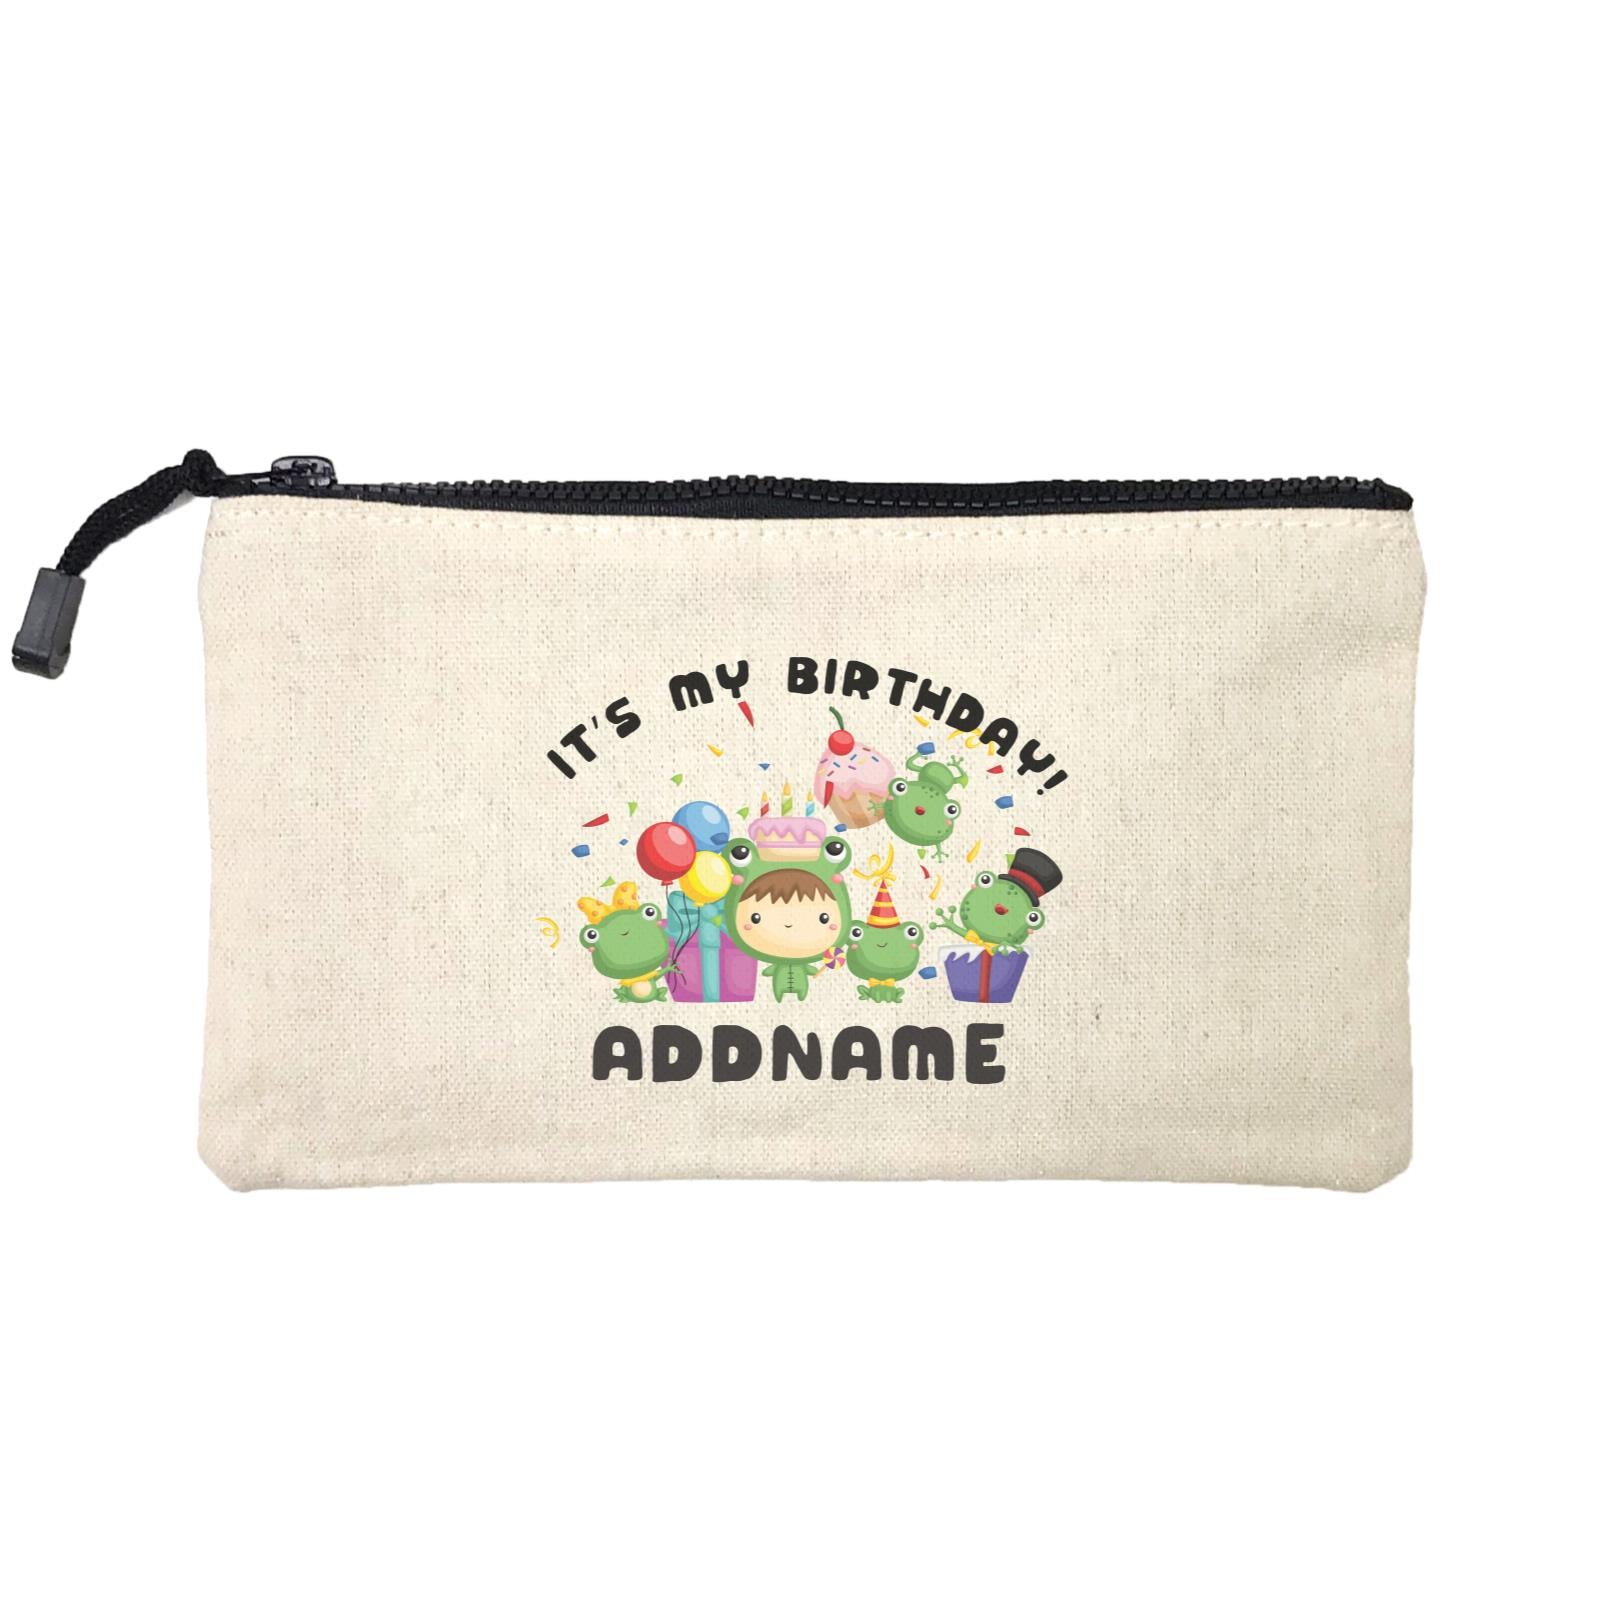 Birthday Frog Happy Frog Group It's My Birthday Addname Mini Accessories Stationery Pouch